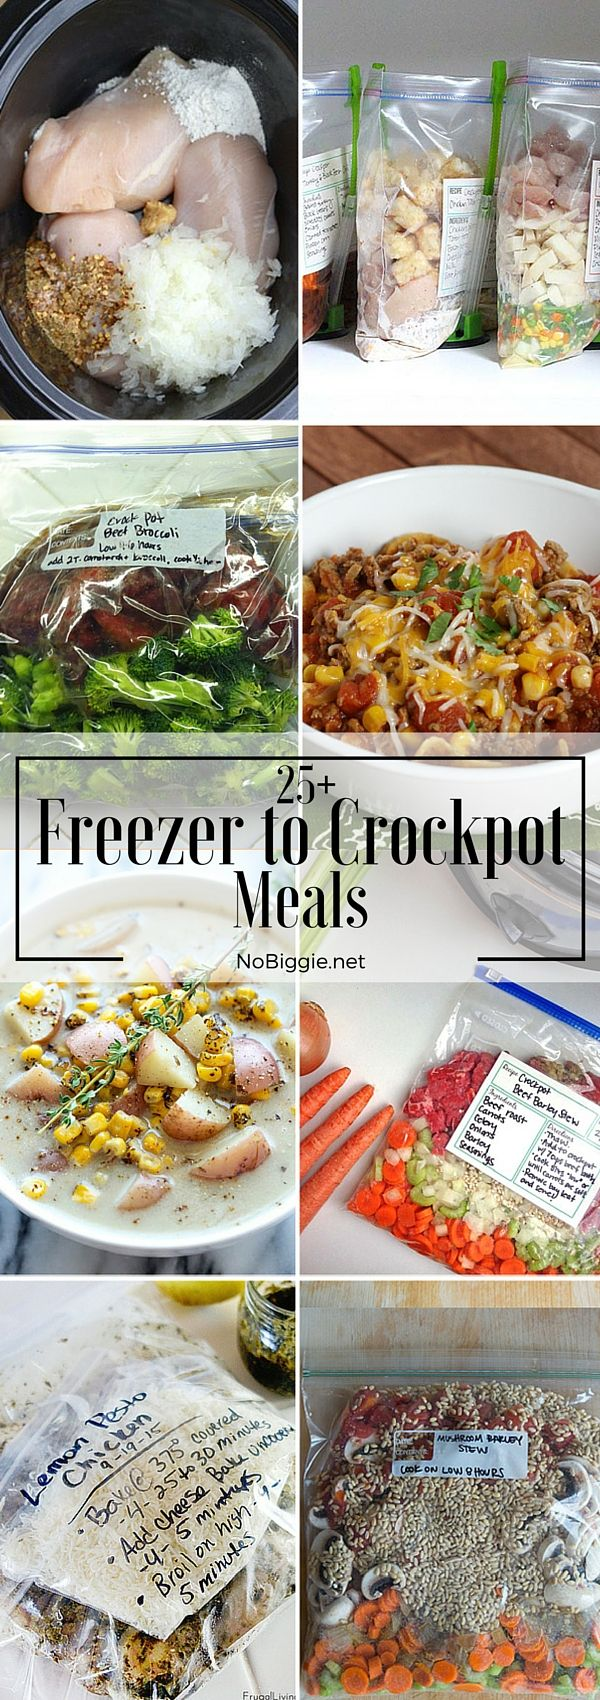 25  Freezer to Crockpot Meals